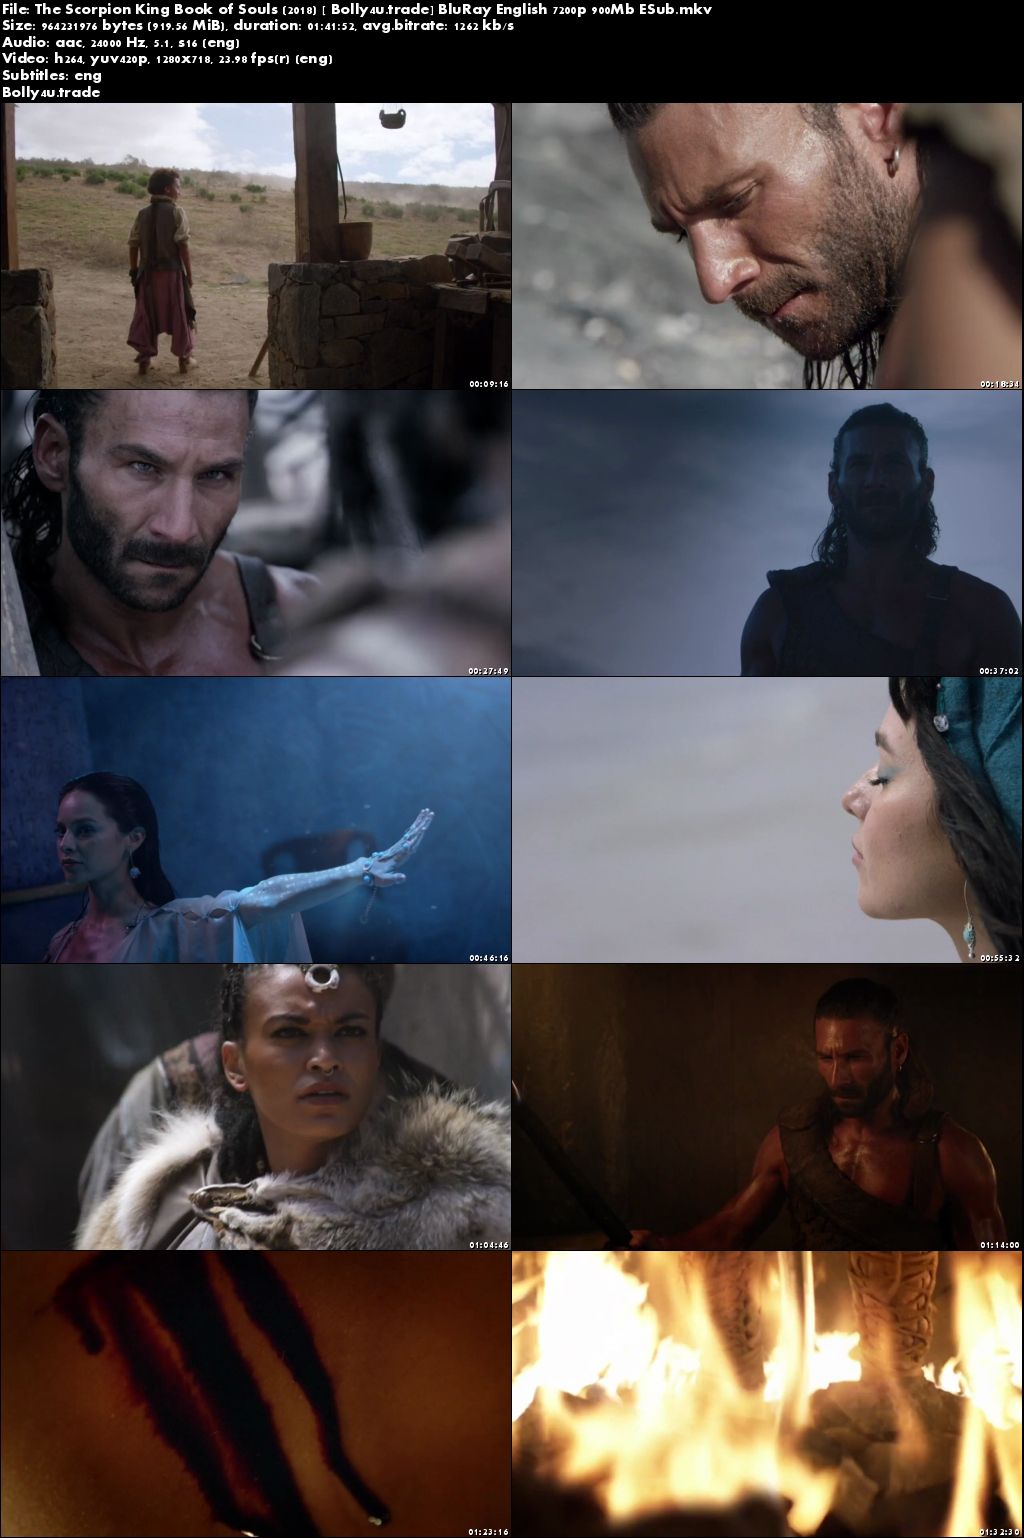 The Scorpion King Book of Souls 2018 BRRip 300MB English 480p ESub Download